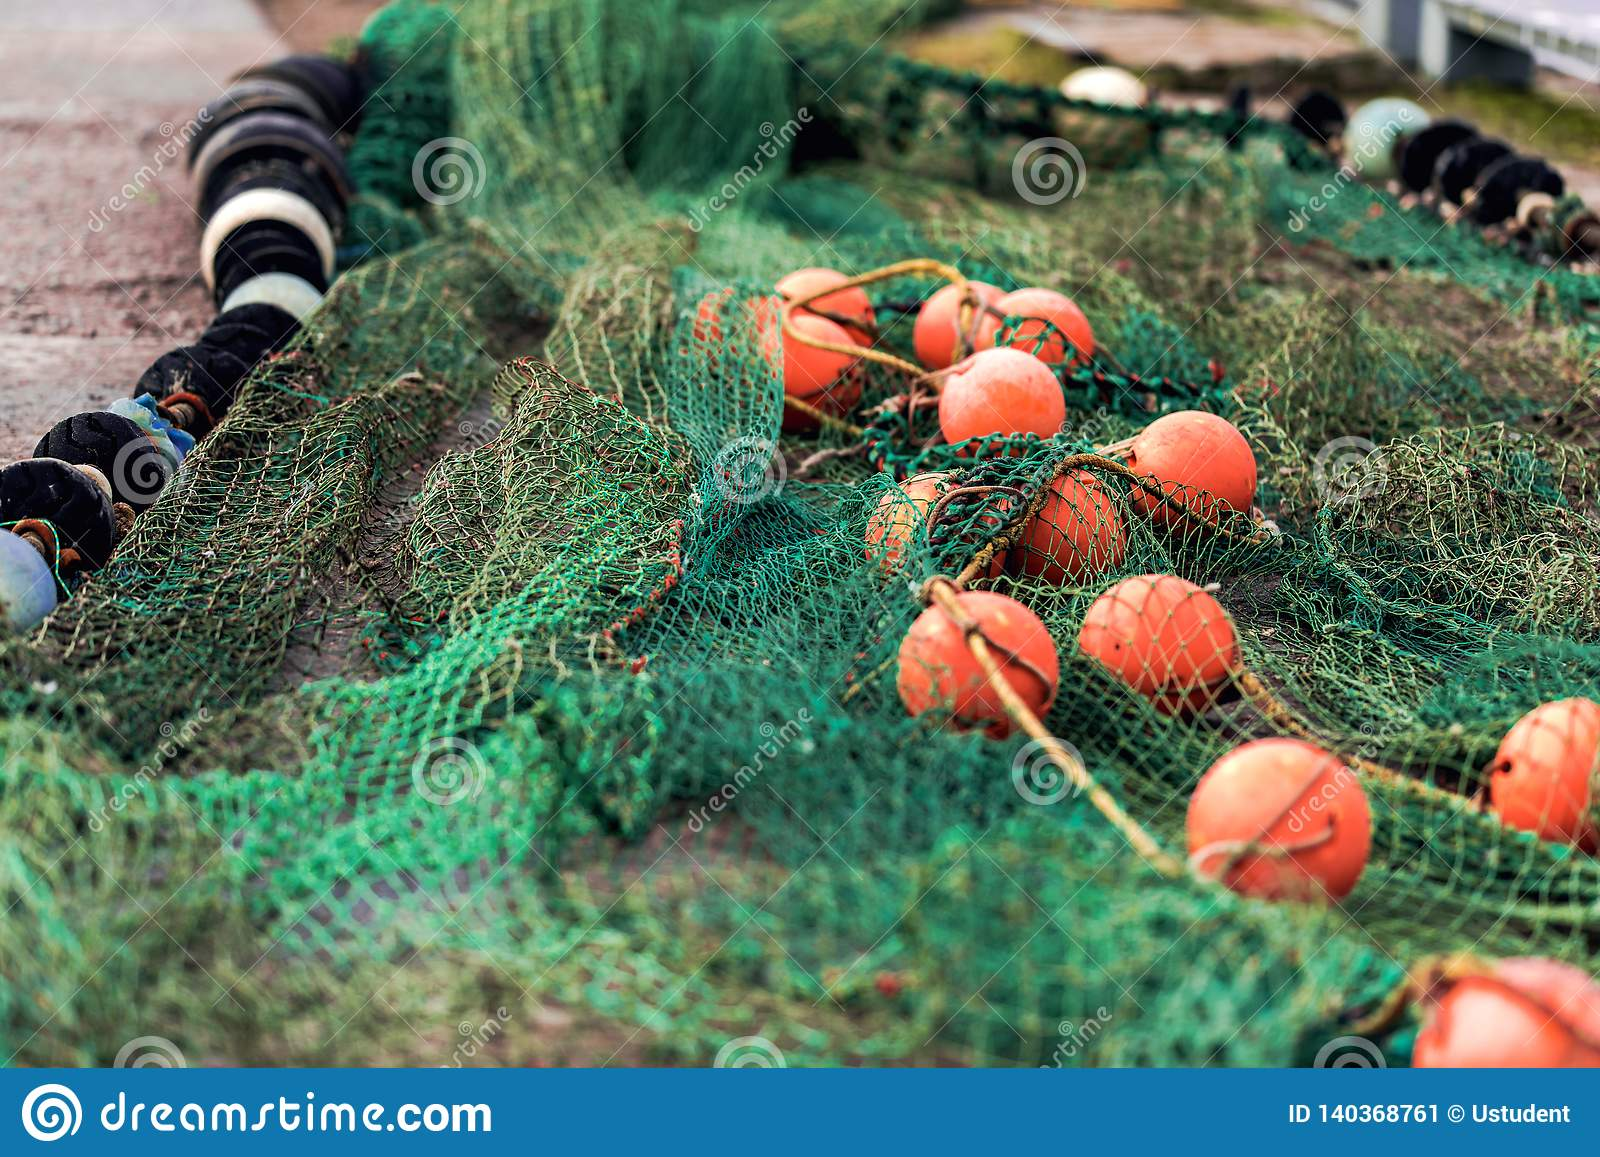 Fishing net with round floats